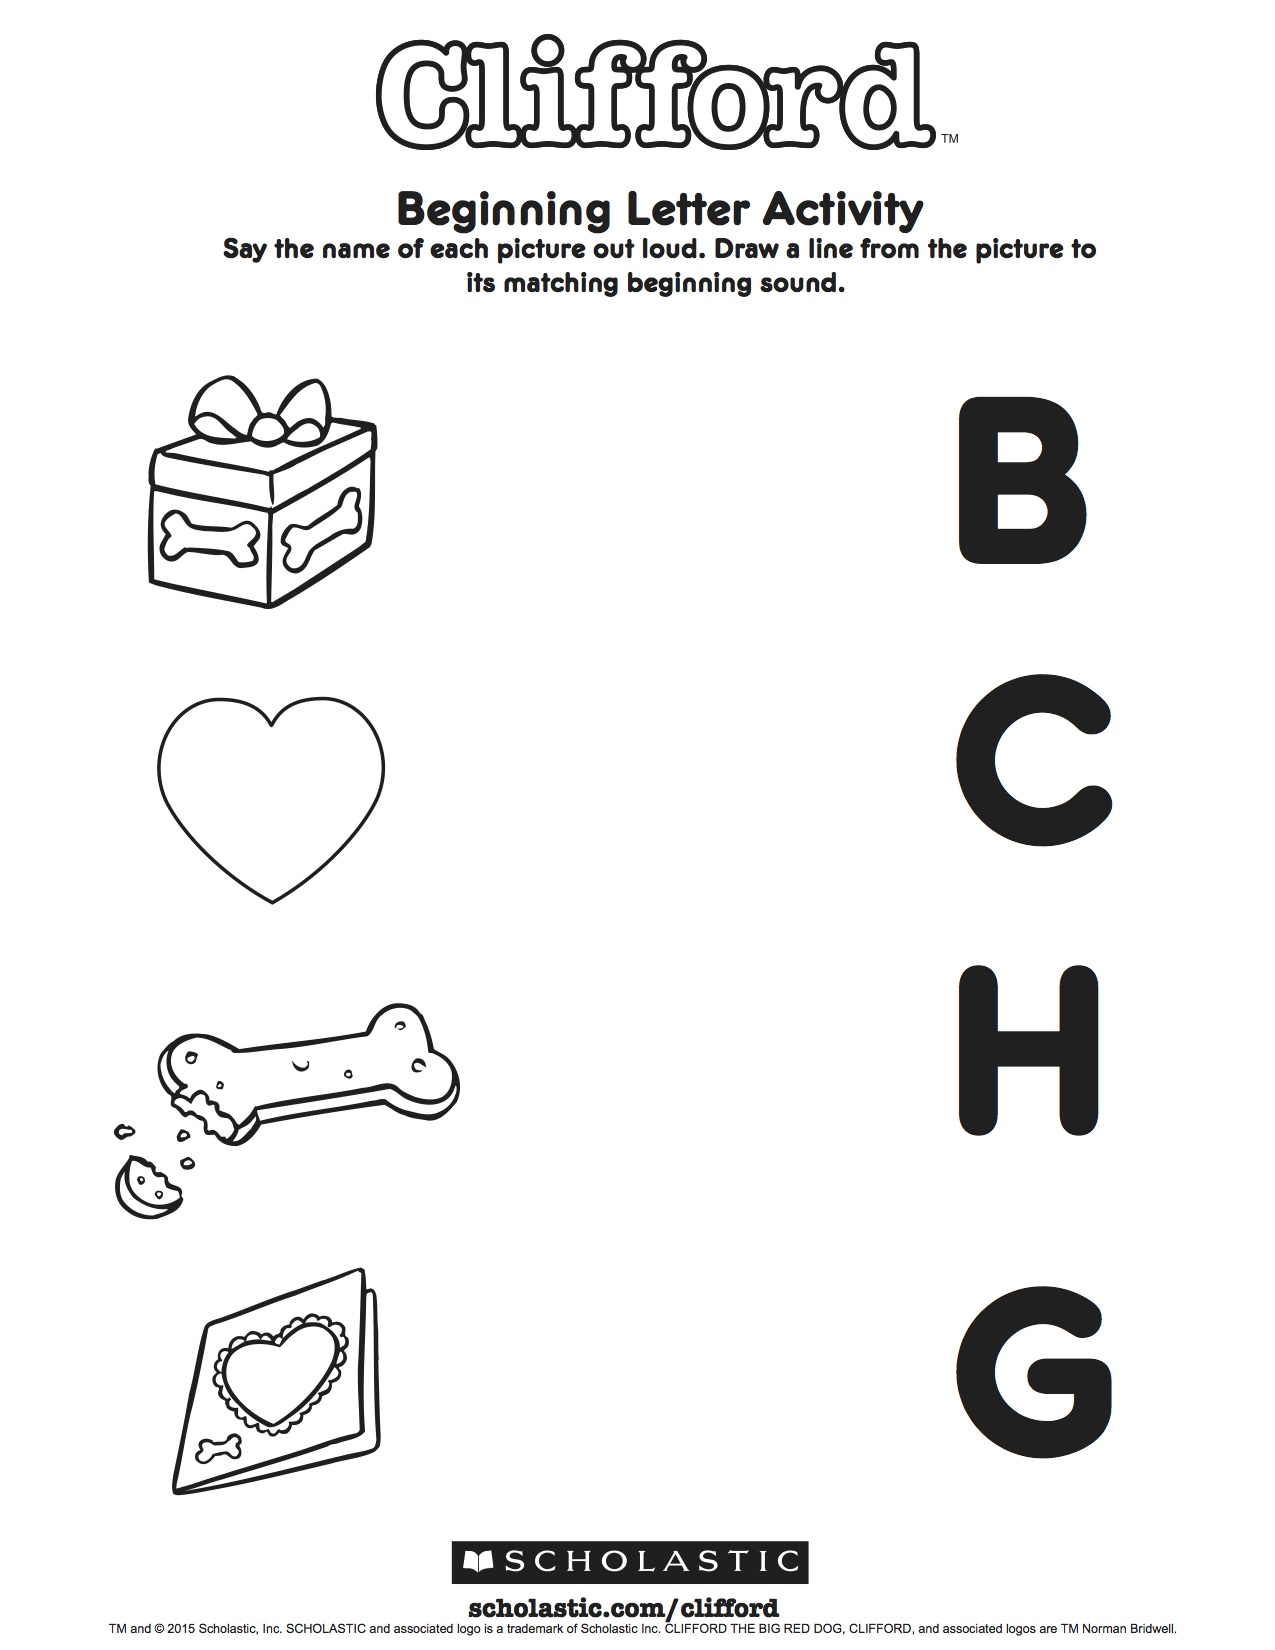 Clifford S Beginning Letter Sound Activity